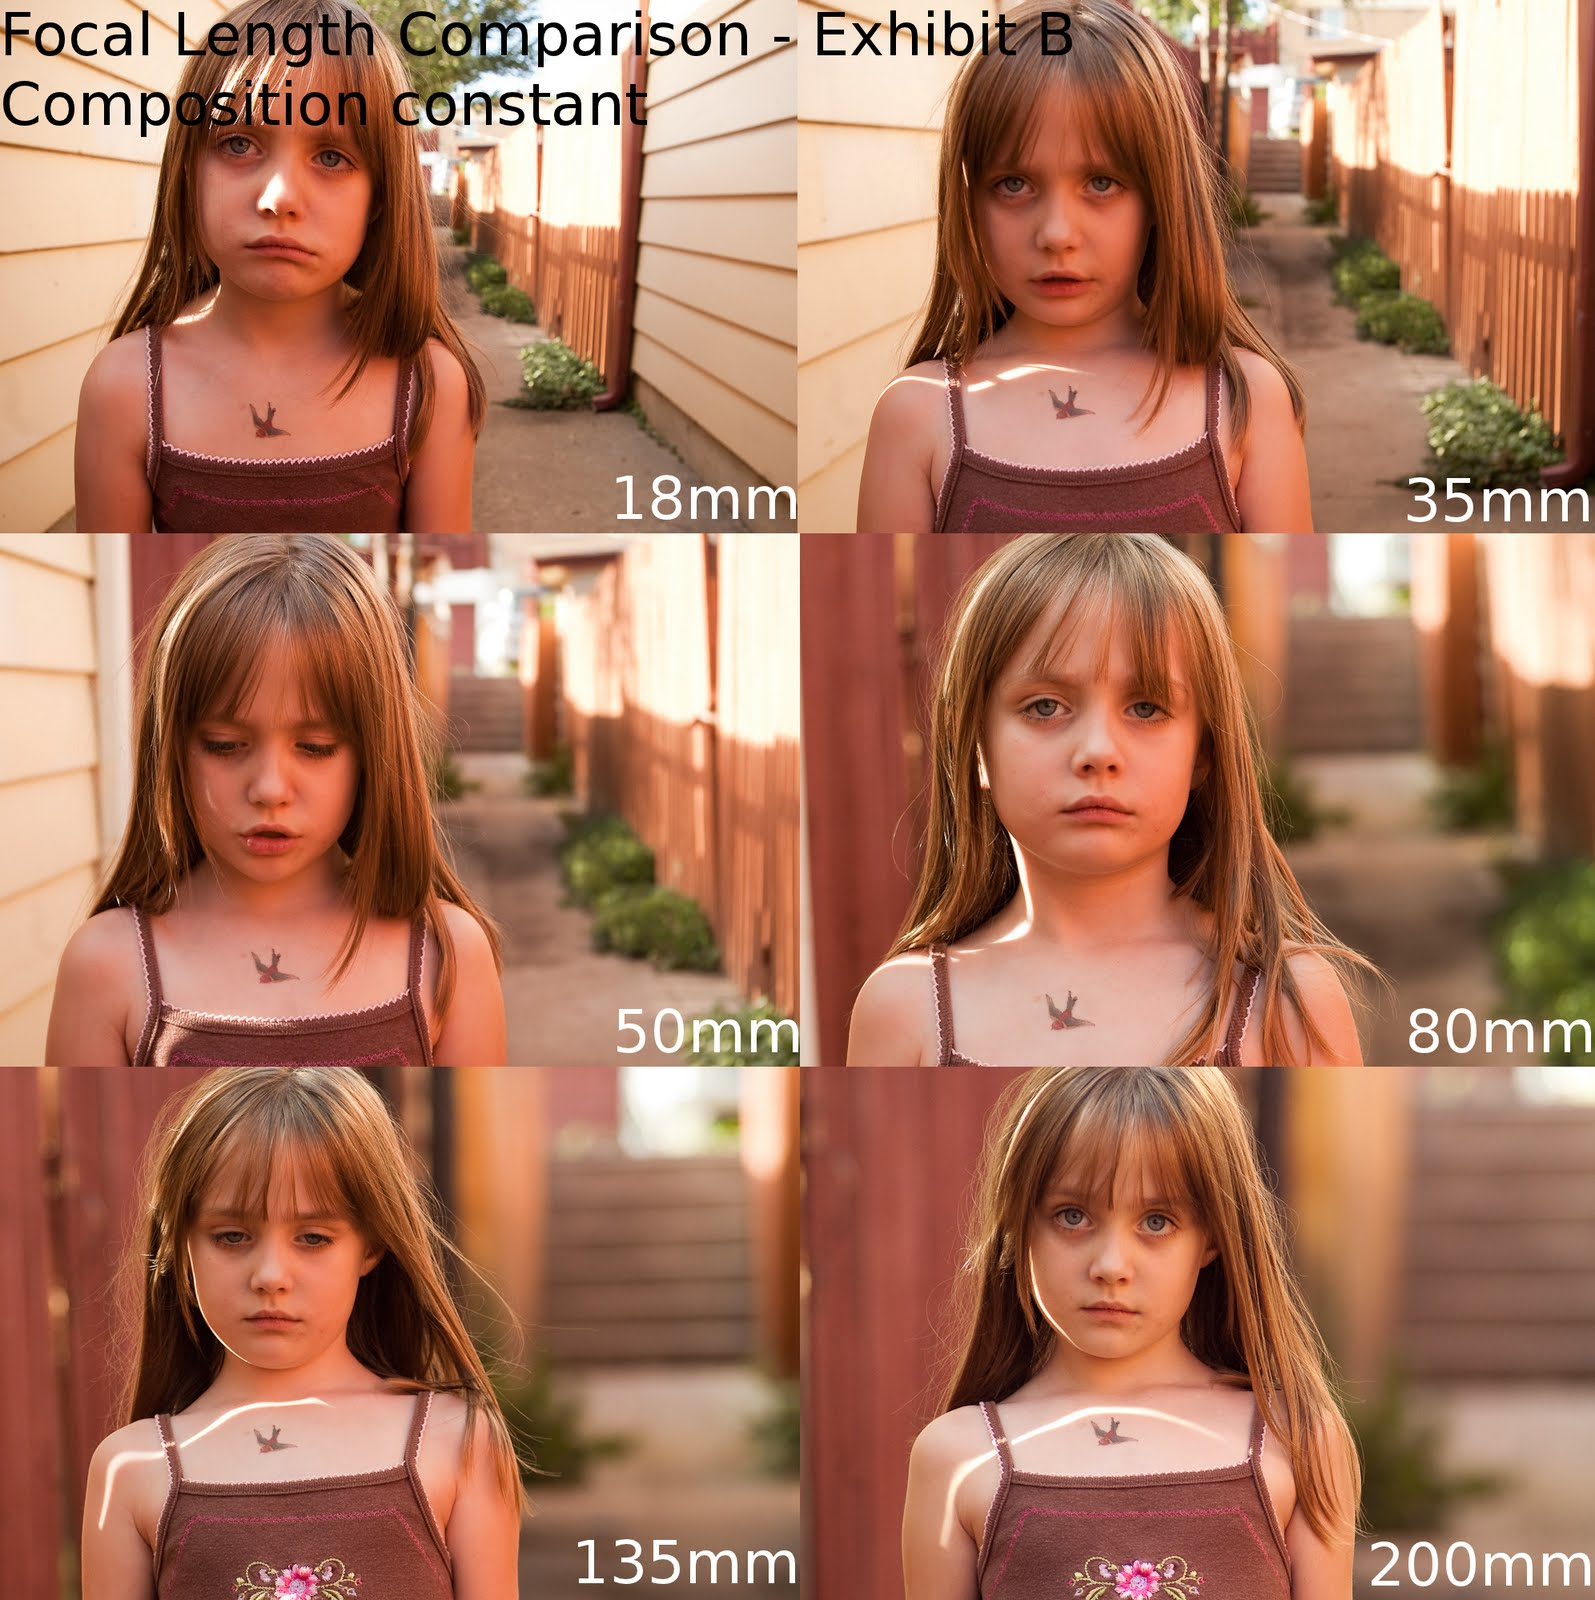 JCorbin Photography Focal Length Can It Compressexpand Your - How focal lengths can change the shape of your face